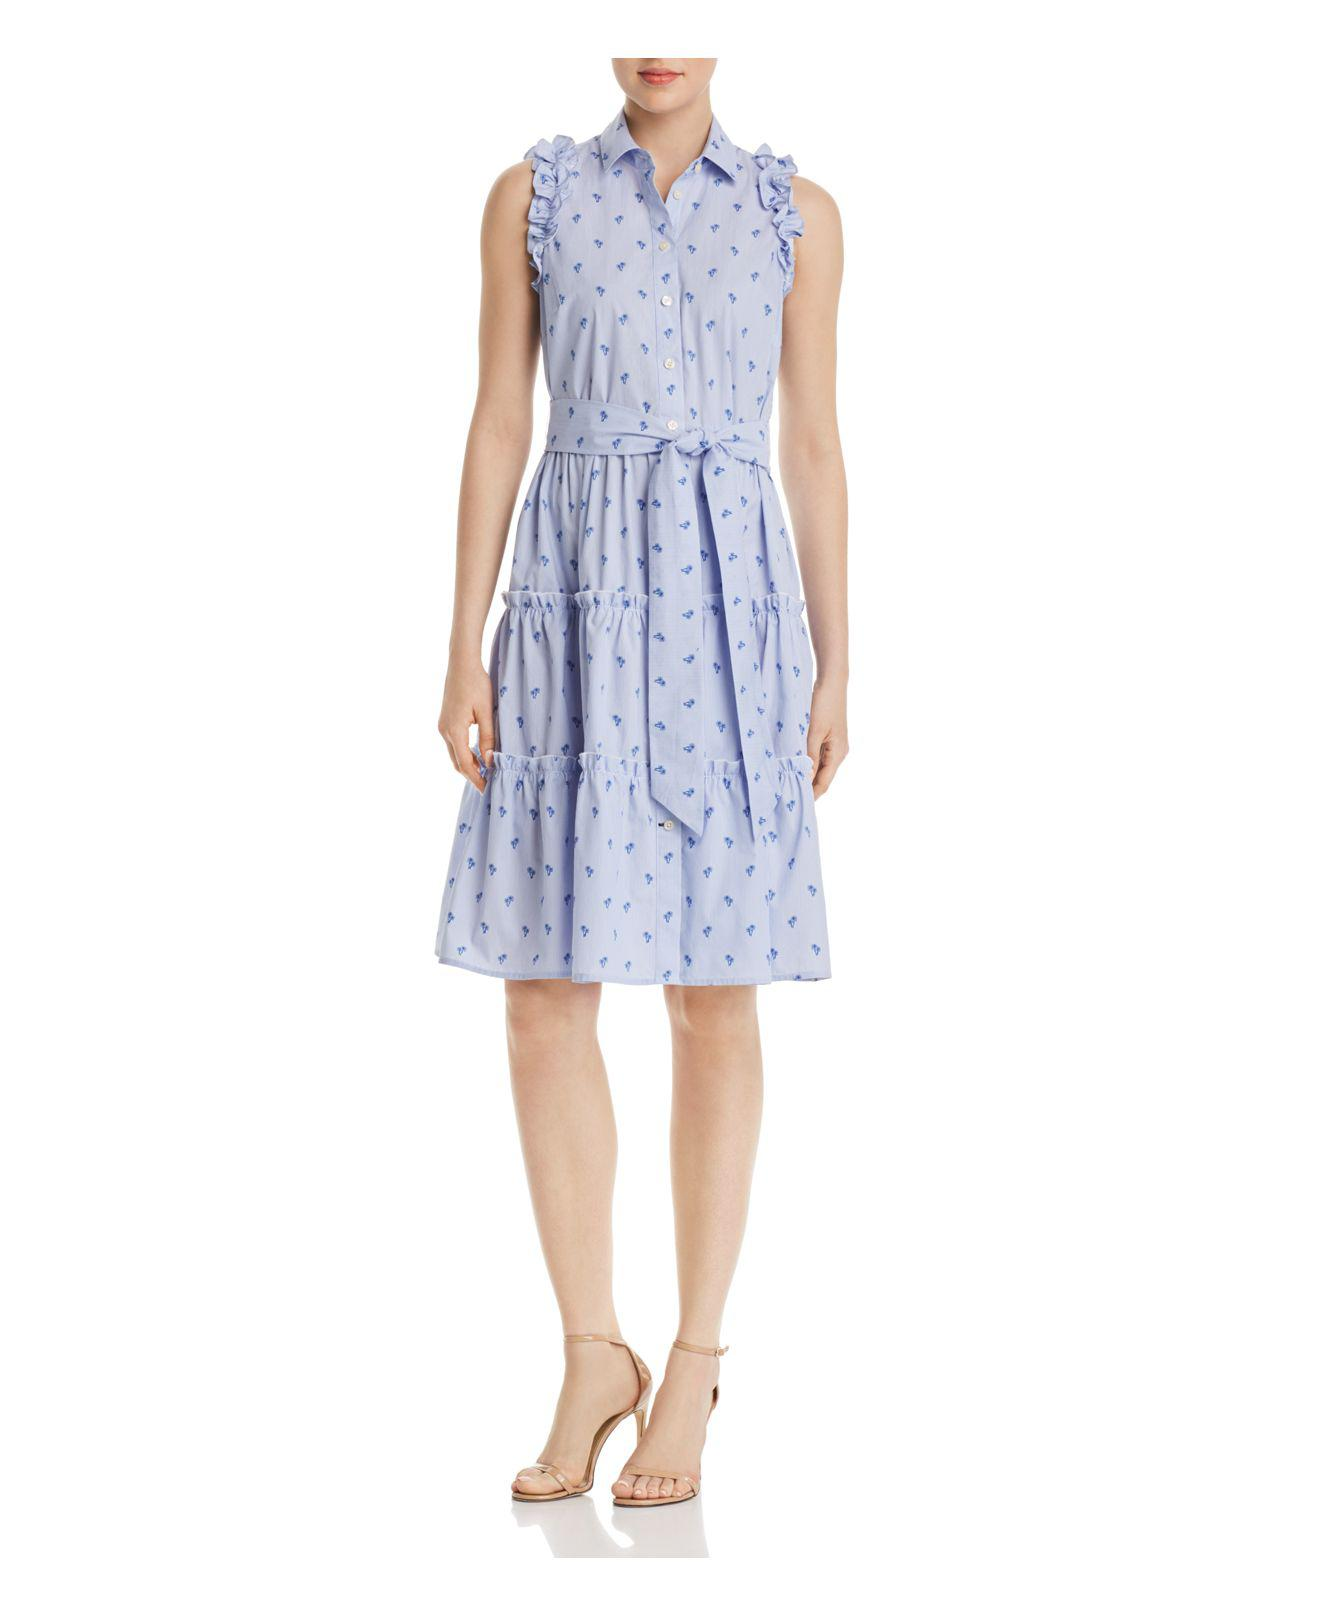 Kate Spade. Women's Blue Sleeveless Palm-tree-print Dress